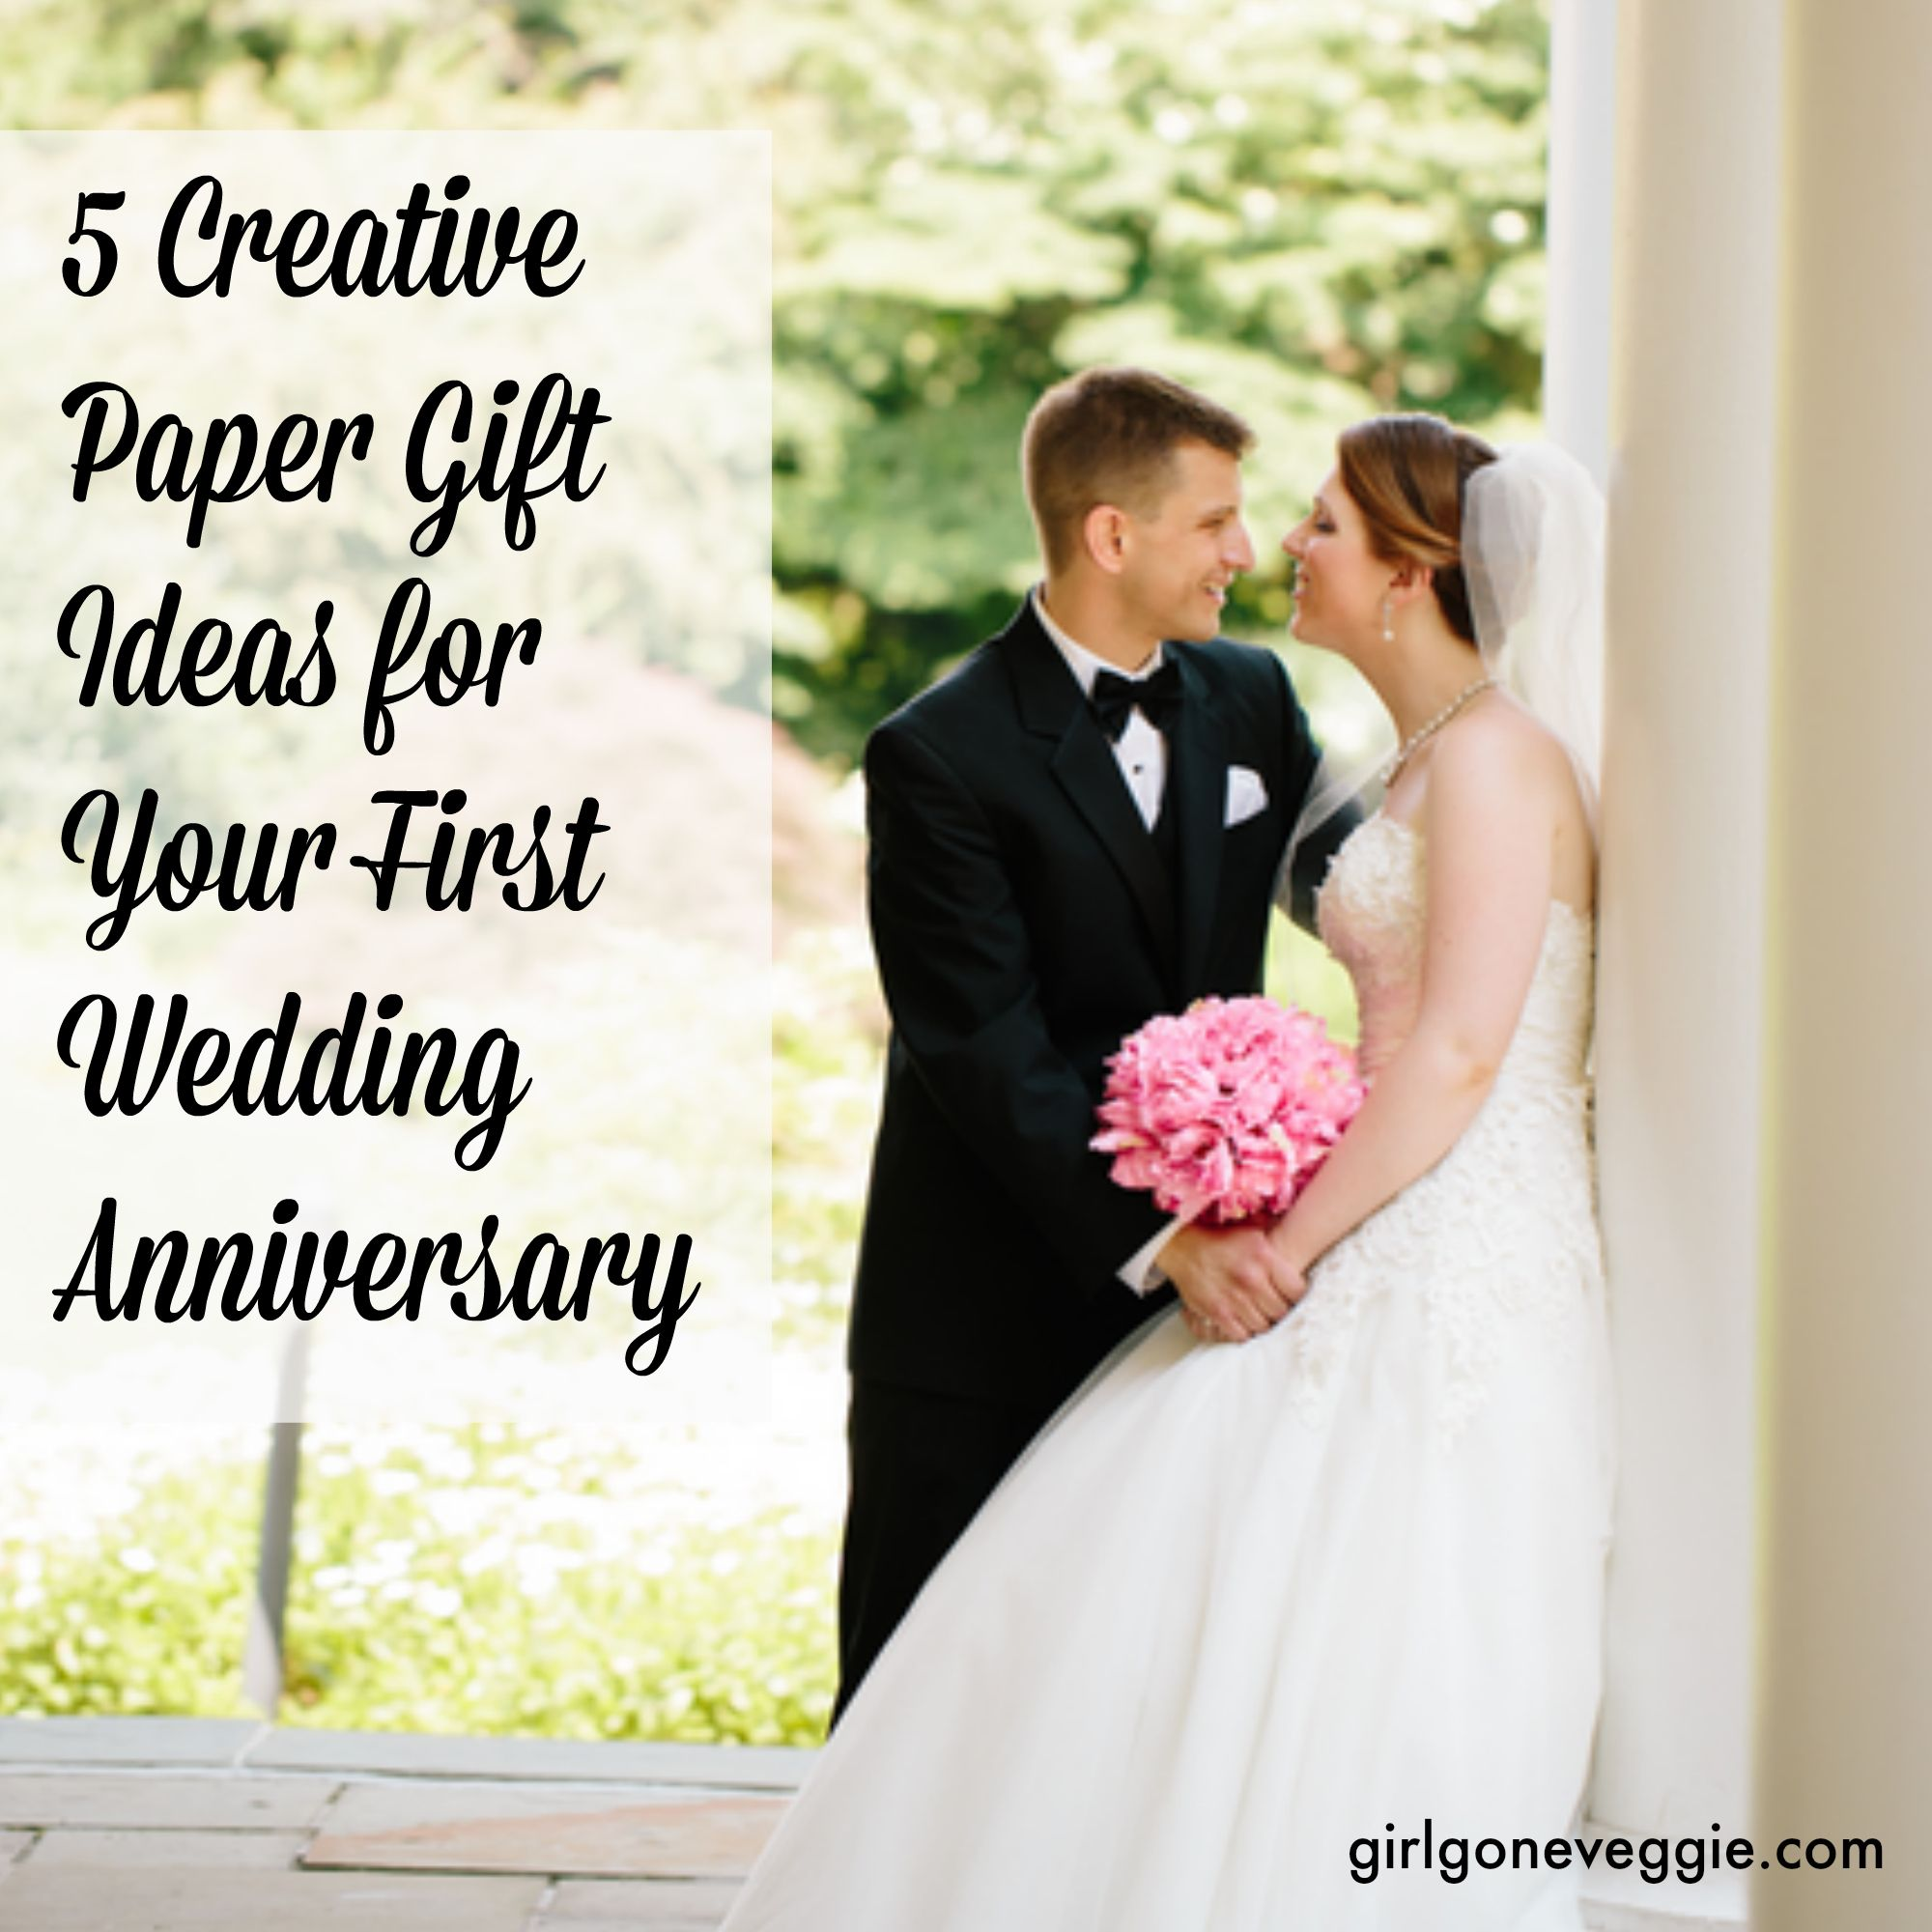 If You Re Looking For Creative Paper Gift Ideas Your 1st Wedding Anniversary Check Out These 5 Fun